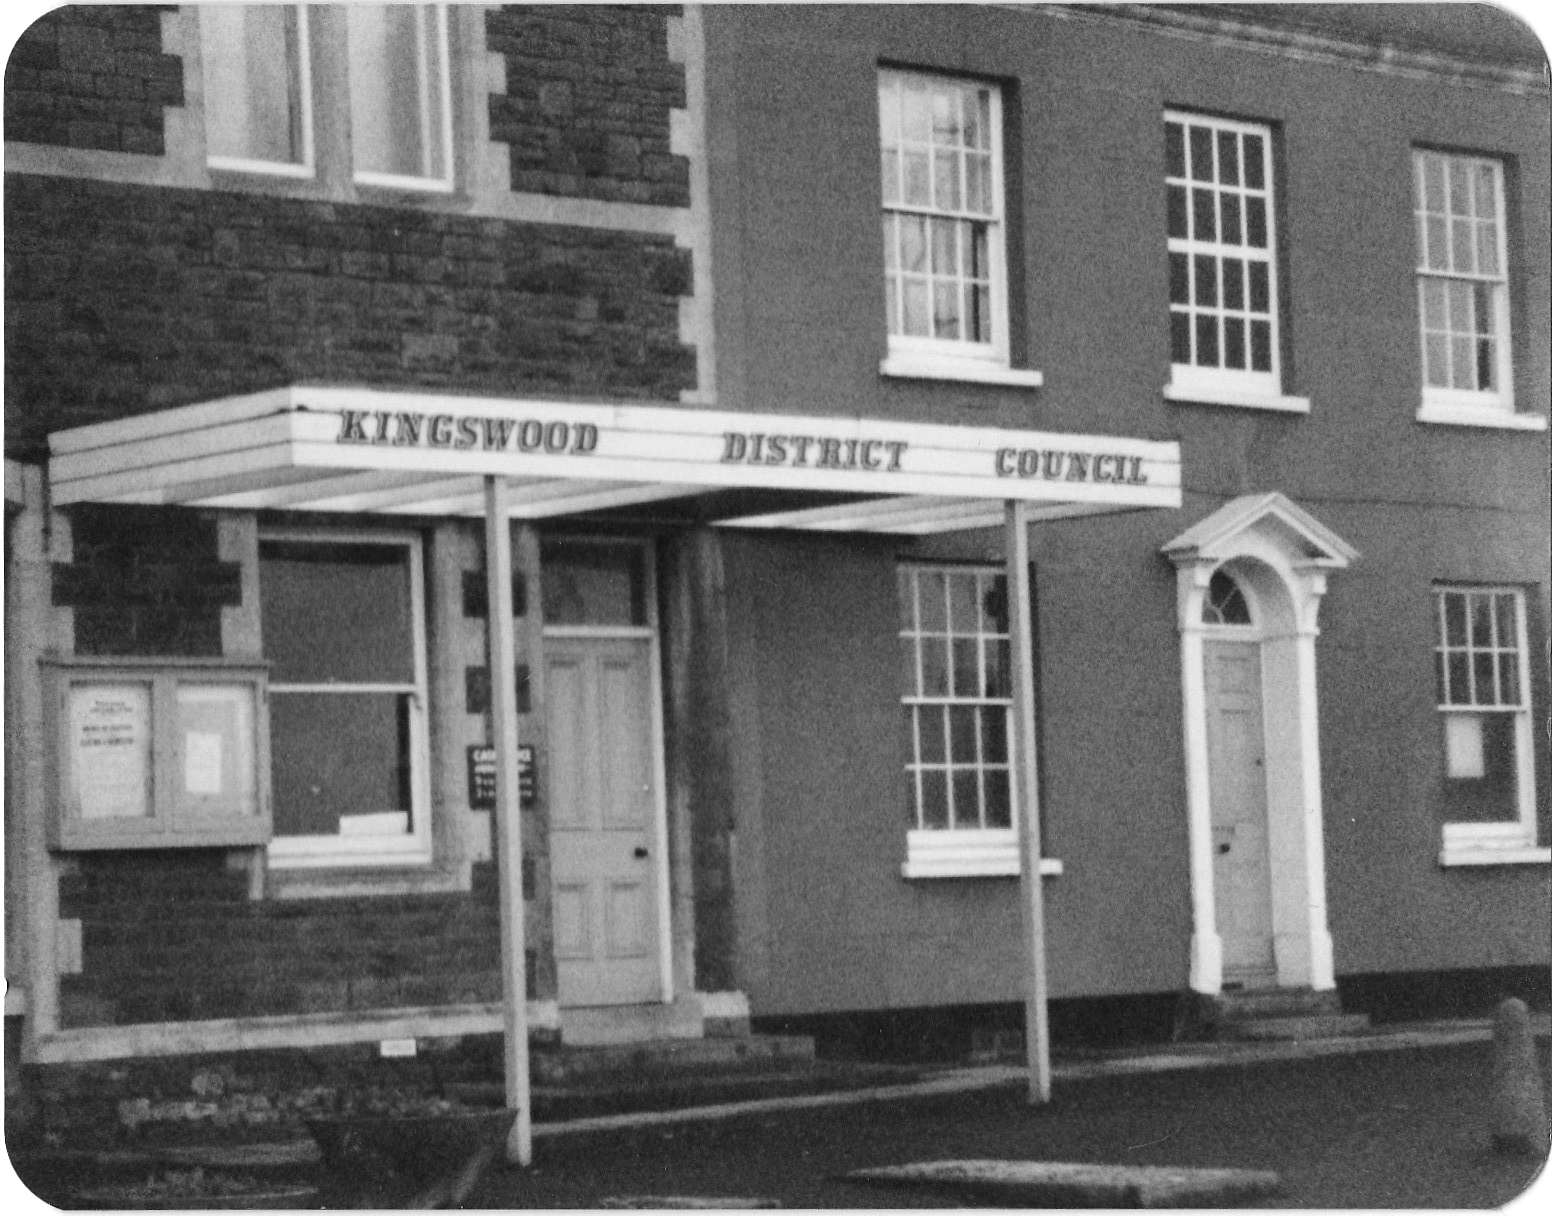 Kingswood District Council